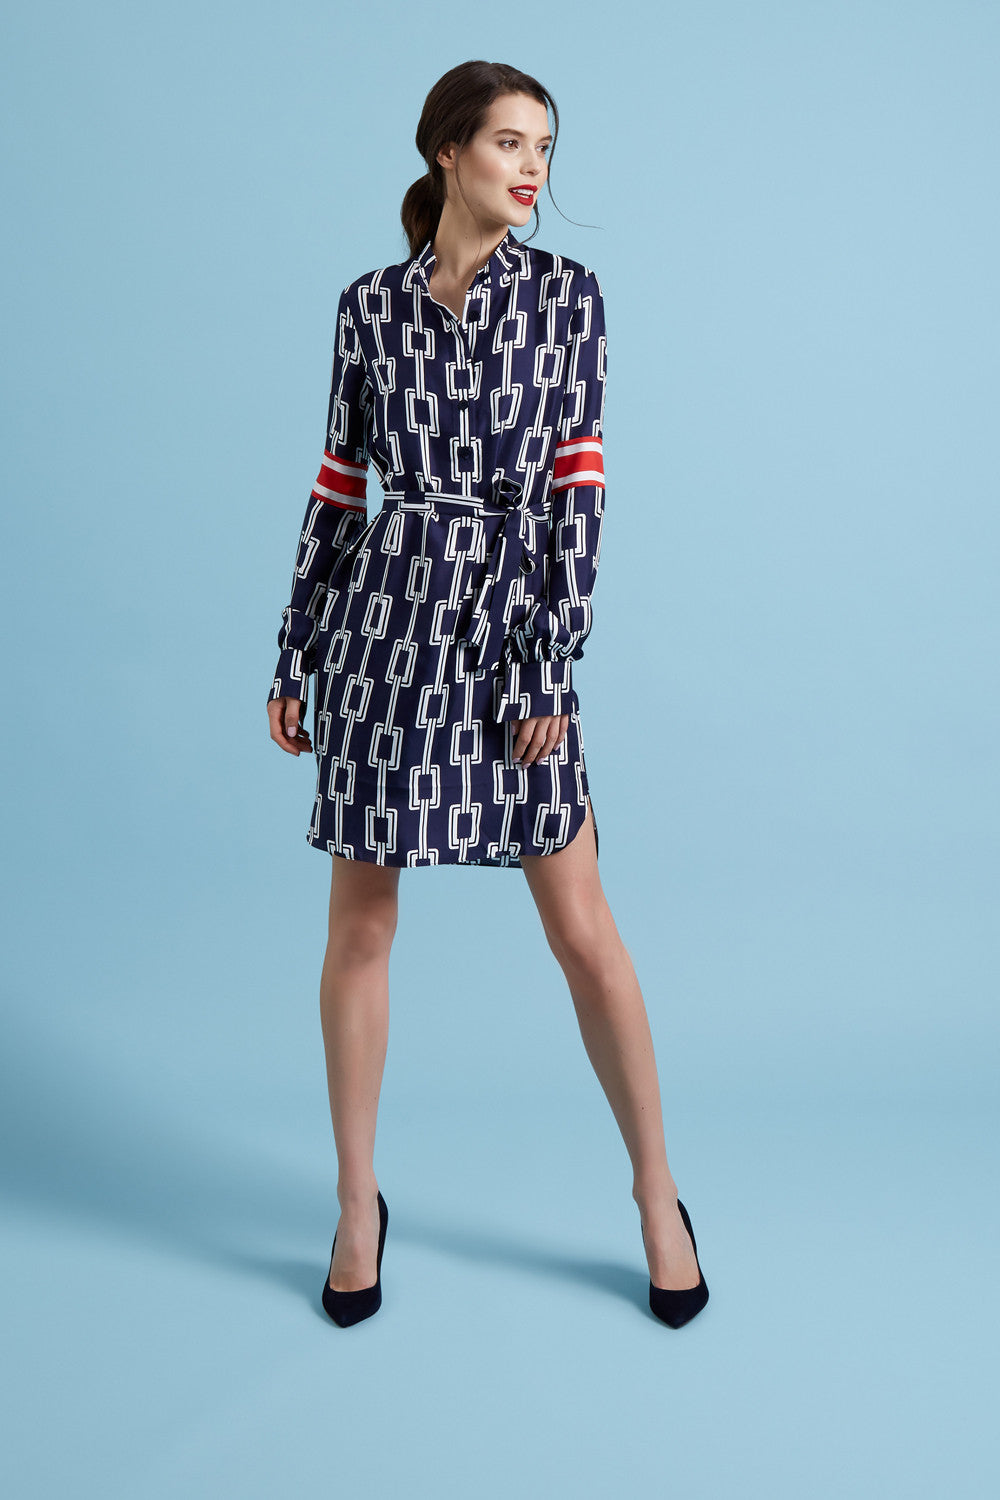 Josephine Shirtwaister - Womenswear - Madderson London